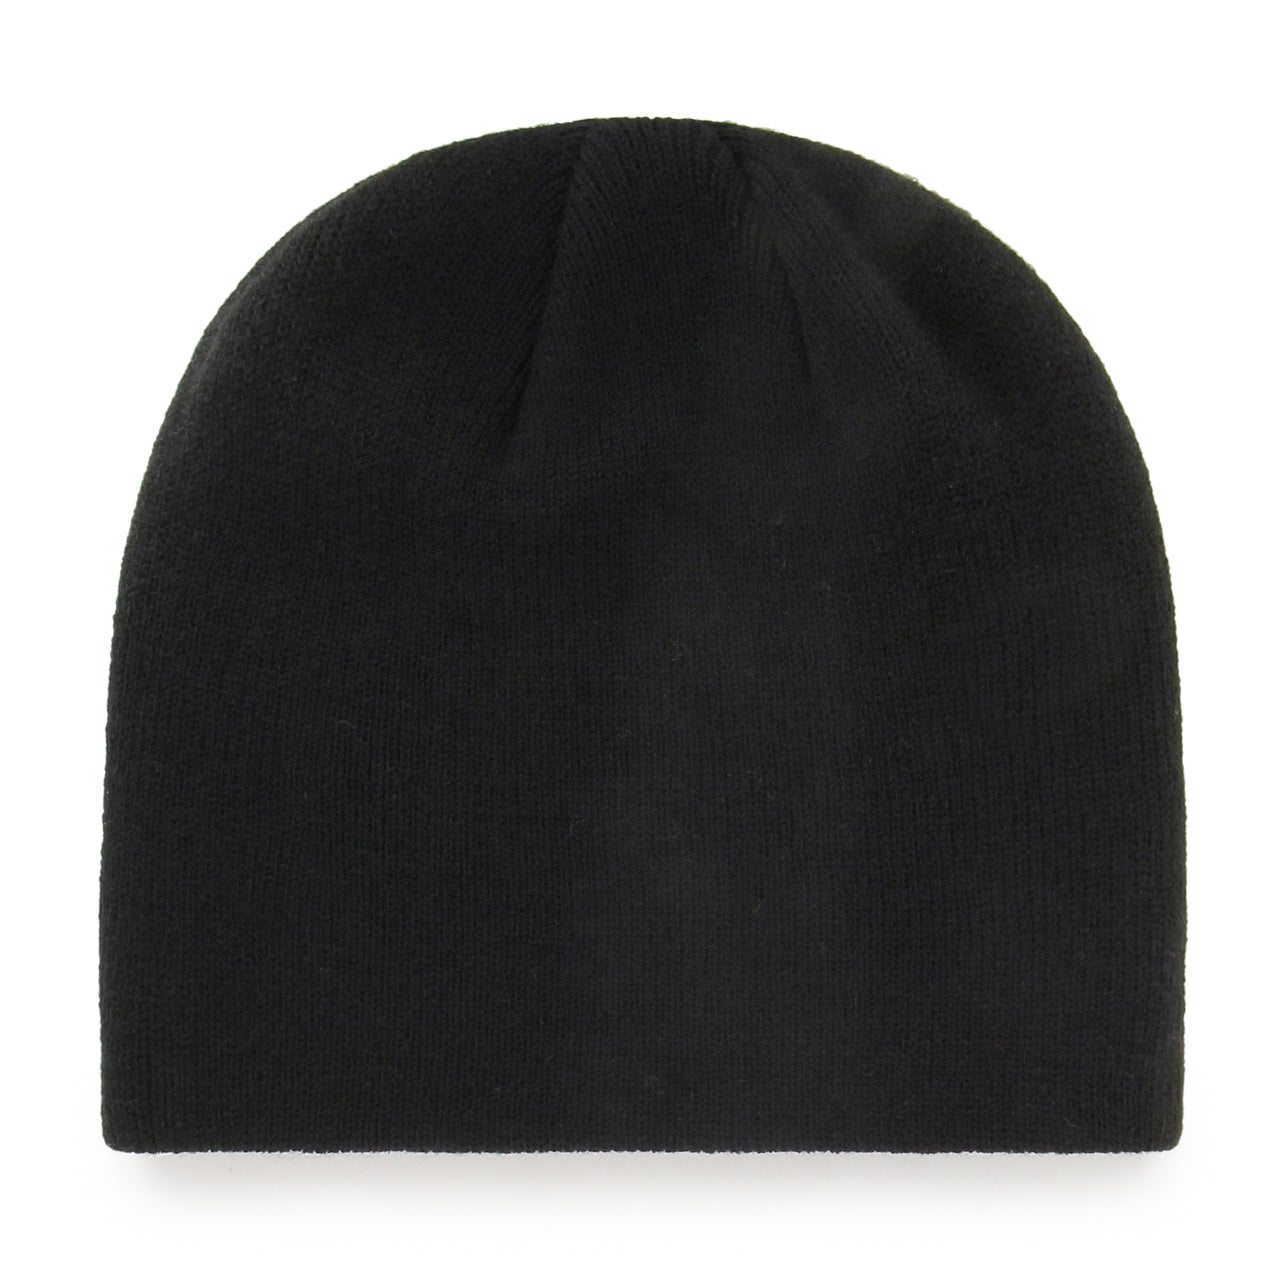 NFFC Black '47 Beanie - Junior